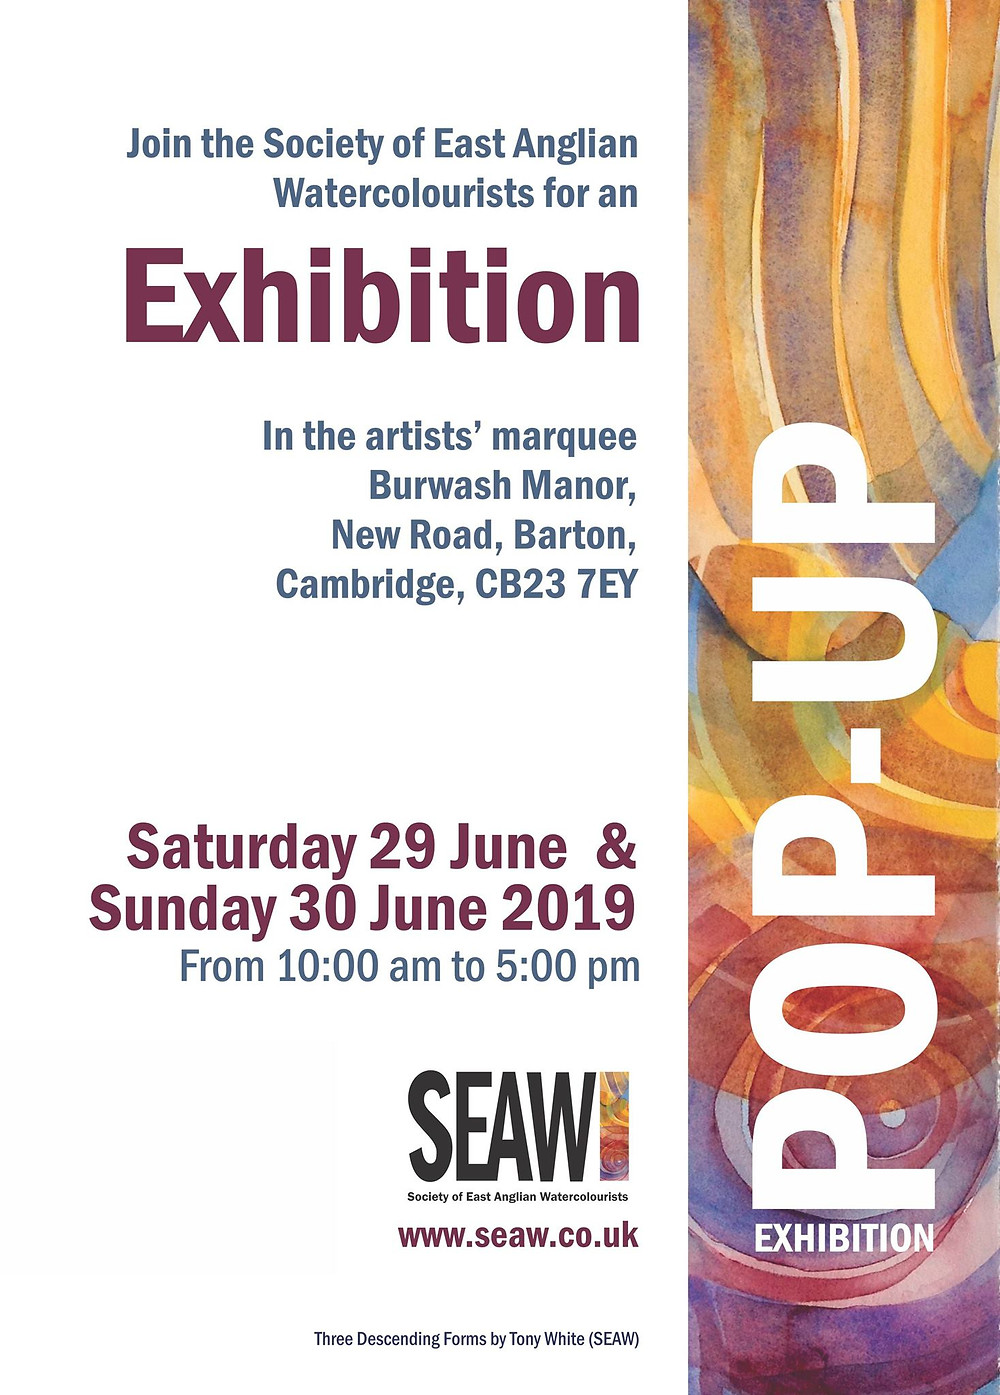 Society of East Anglian Watercolourists Exhibition